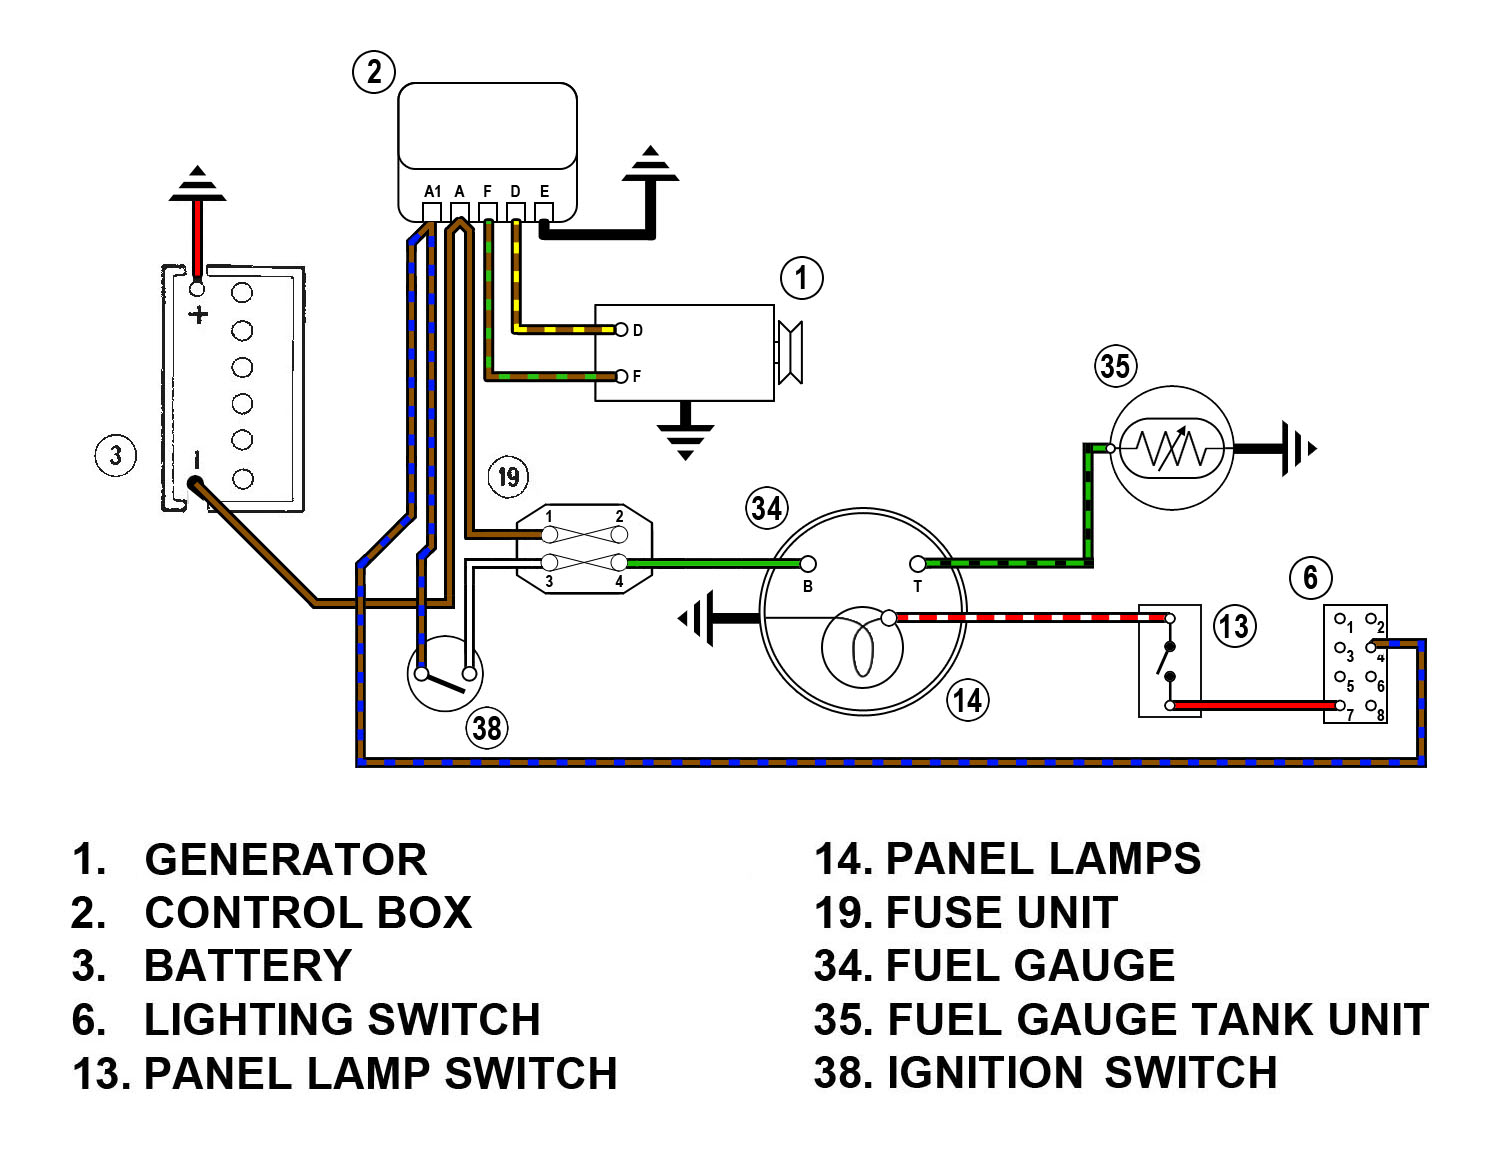 FuelGaugeWiringSpMkII_MGMkI gauge wiring diagram veethree gauges wiring diagrams \u2022 wiring Trailer Wiring Diagram at webbmarketing.co